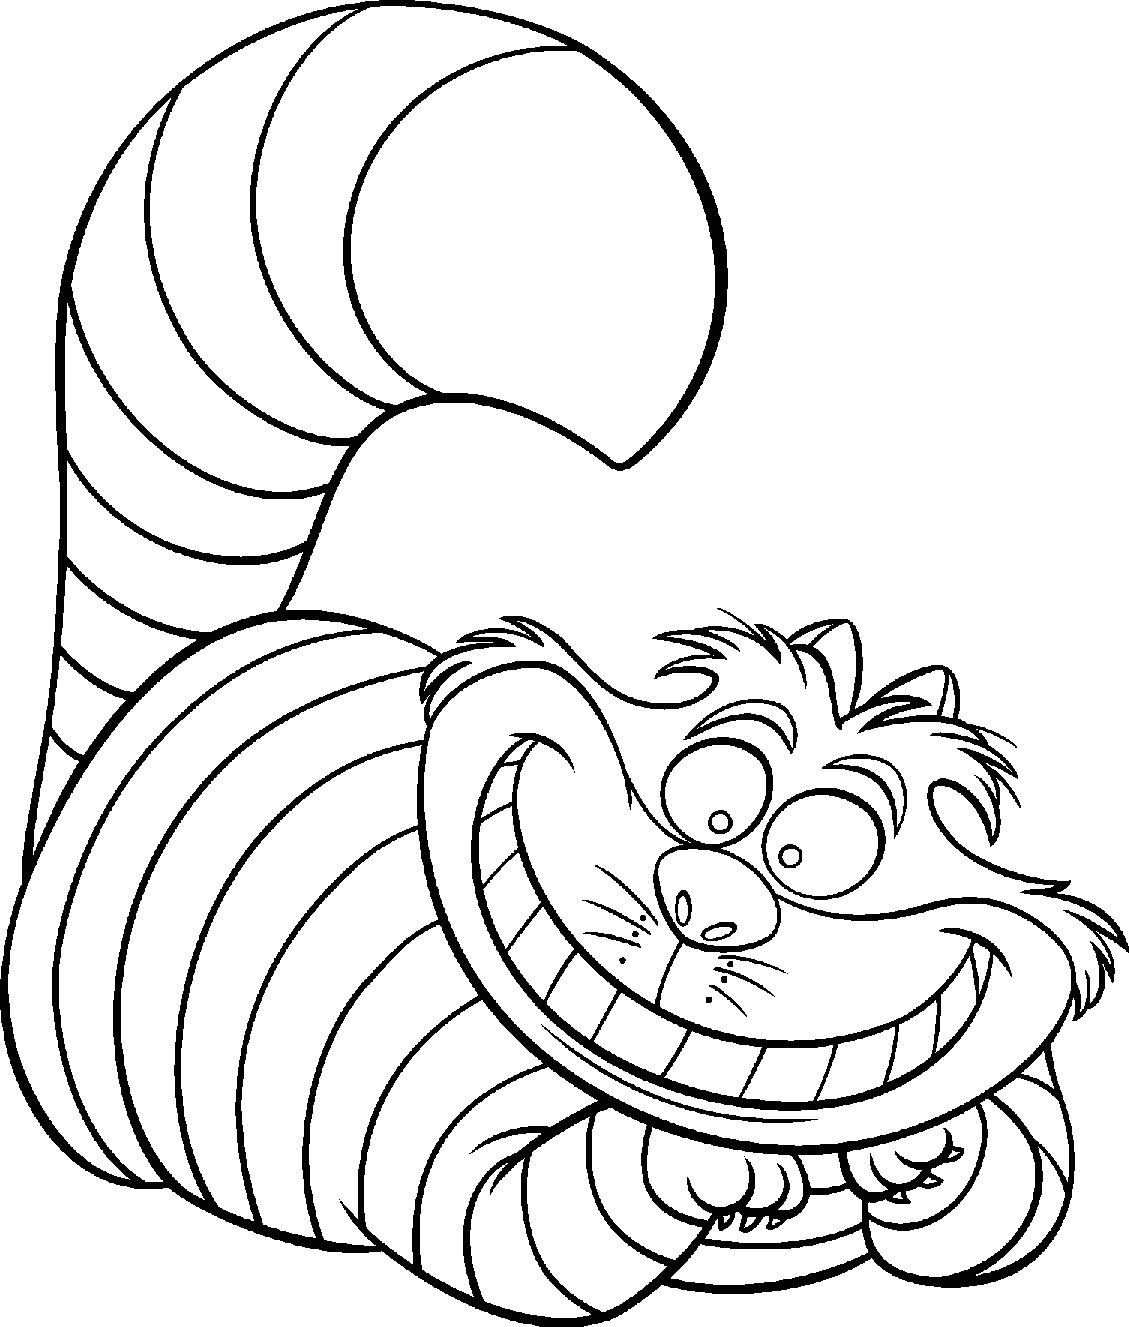 Coloring Pages Of Alice In Wonderland Characters Disney Coloring Pages